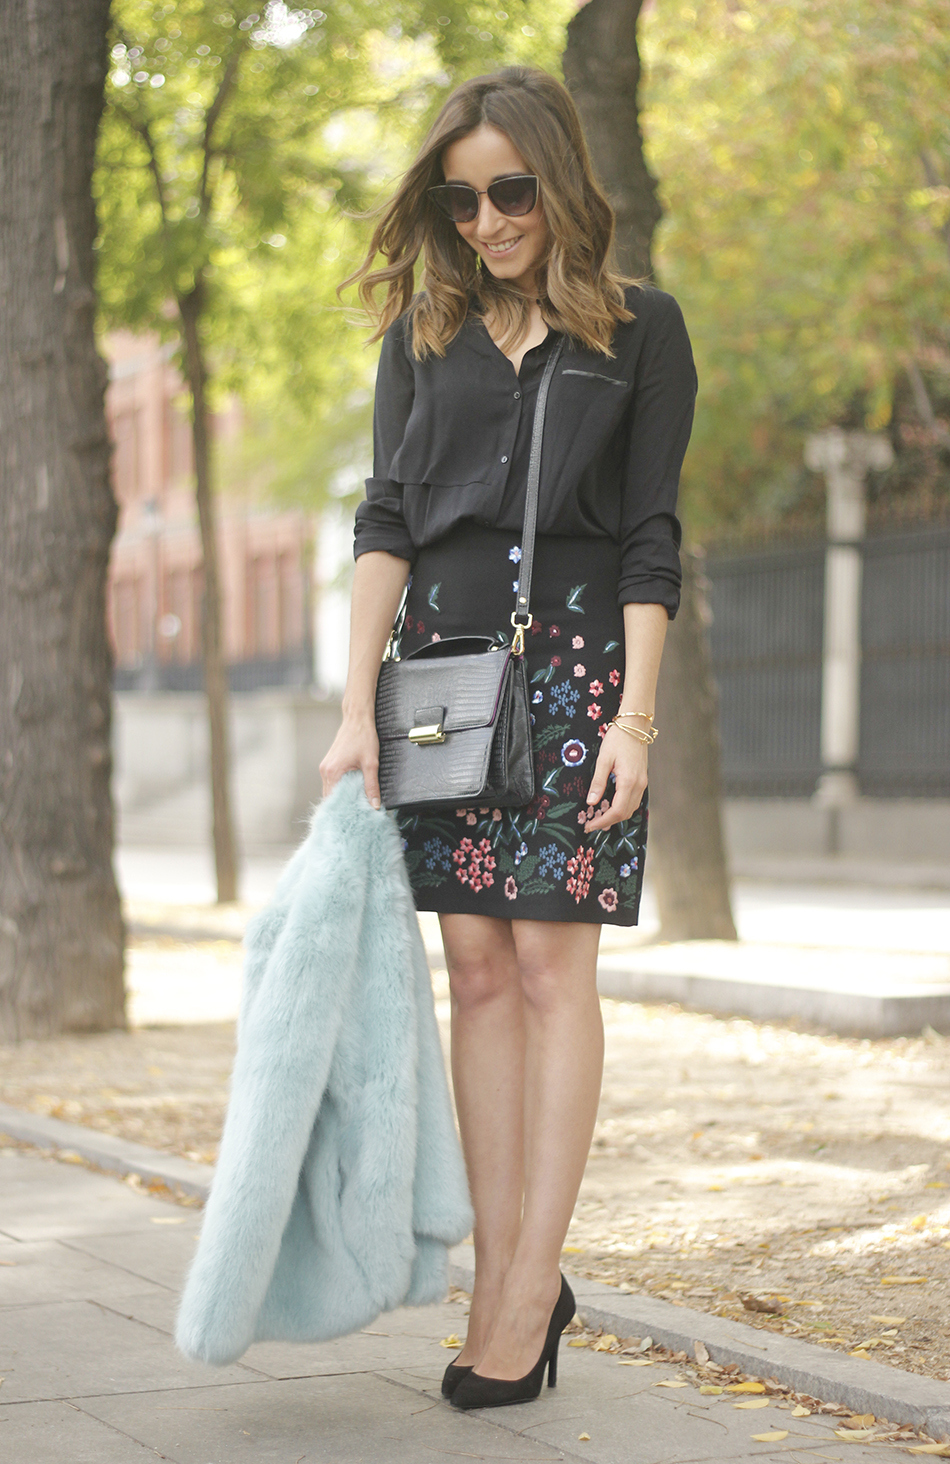 black skirt with flowers outfit07